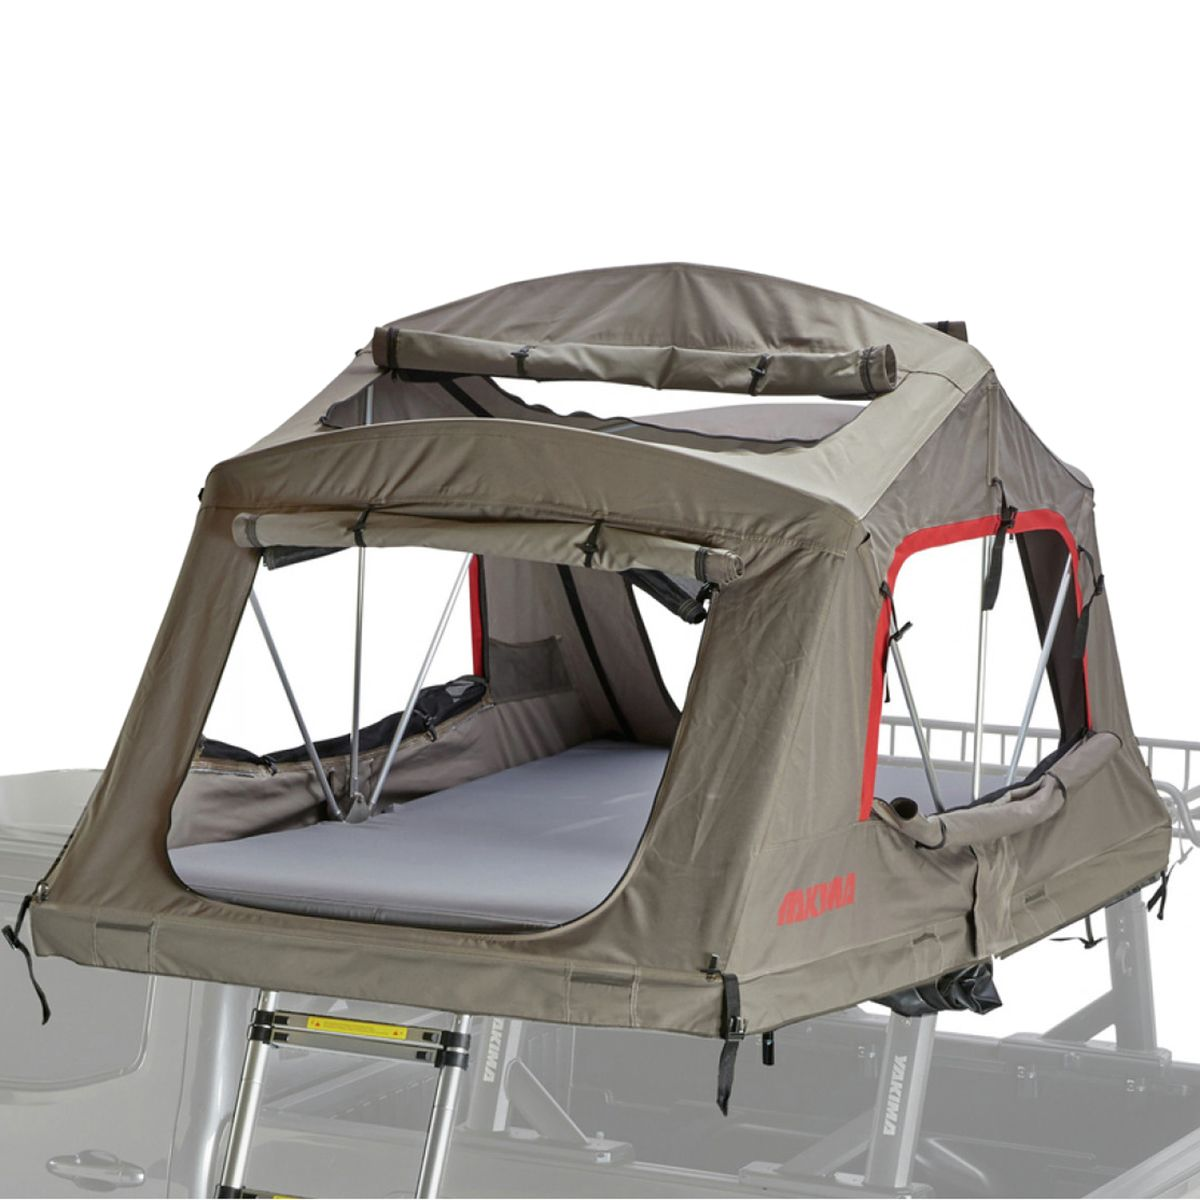 Yakima SkyRise HD Tent Medium